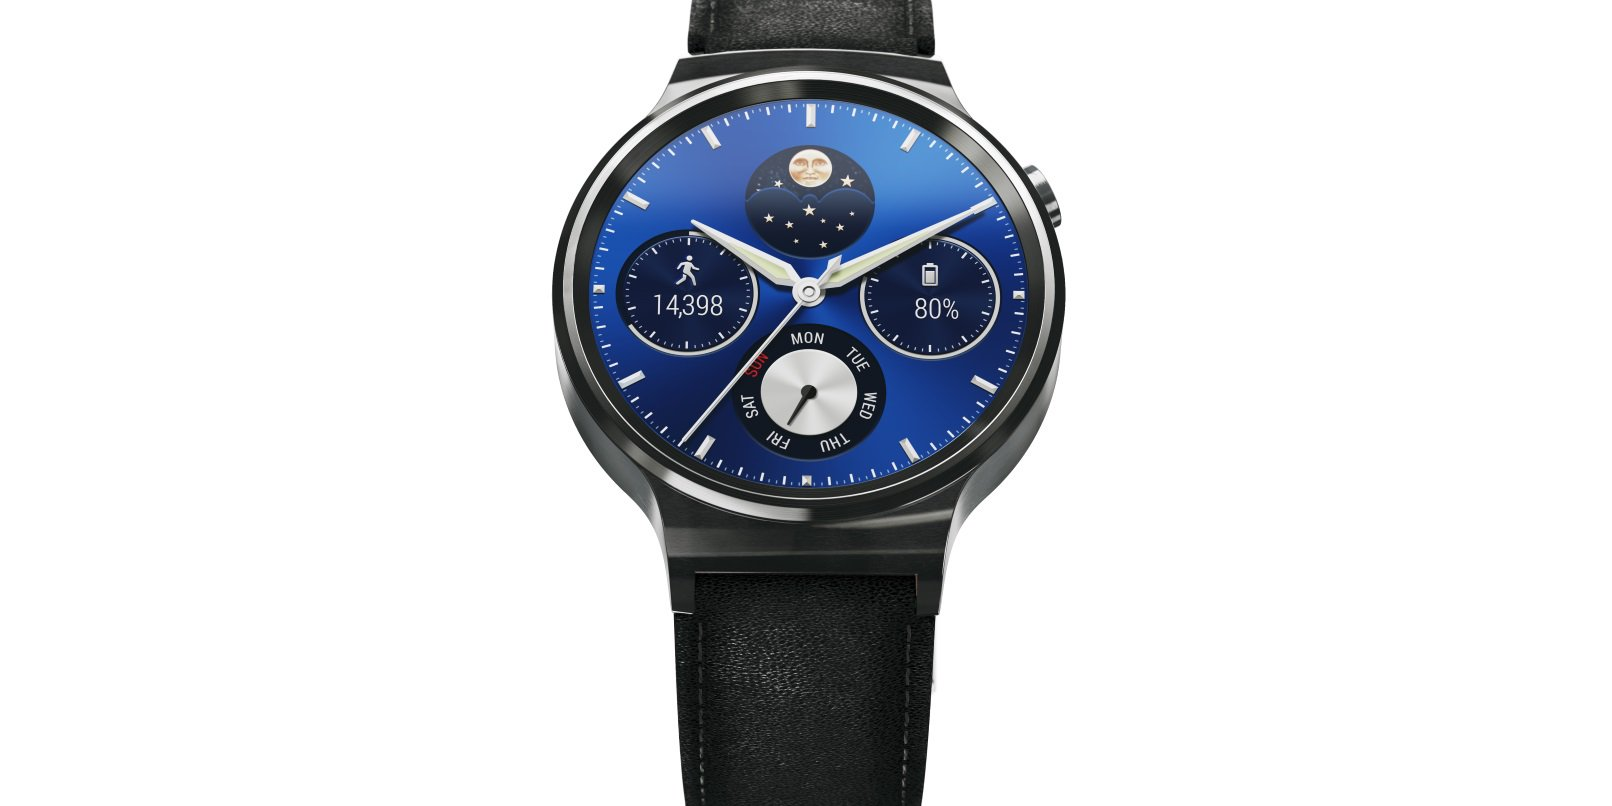 RT @TheNextWeb: The Huawei Watch is selling itself on design, but it's not entirely convincing https://t.co/I1xUjoX7o1 https://t.co/tRTlm1F…